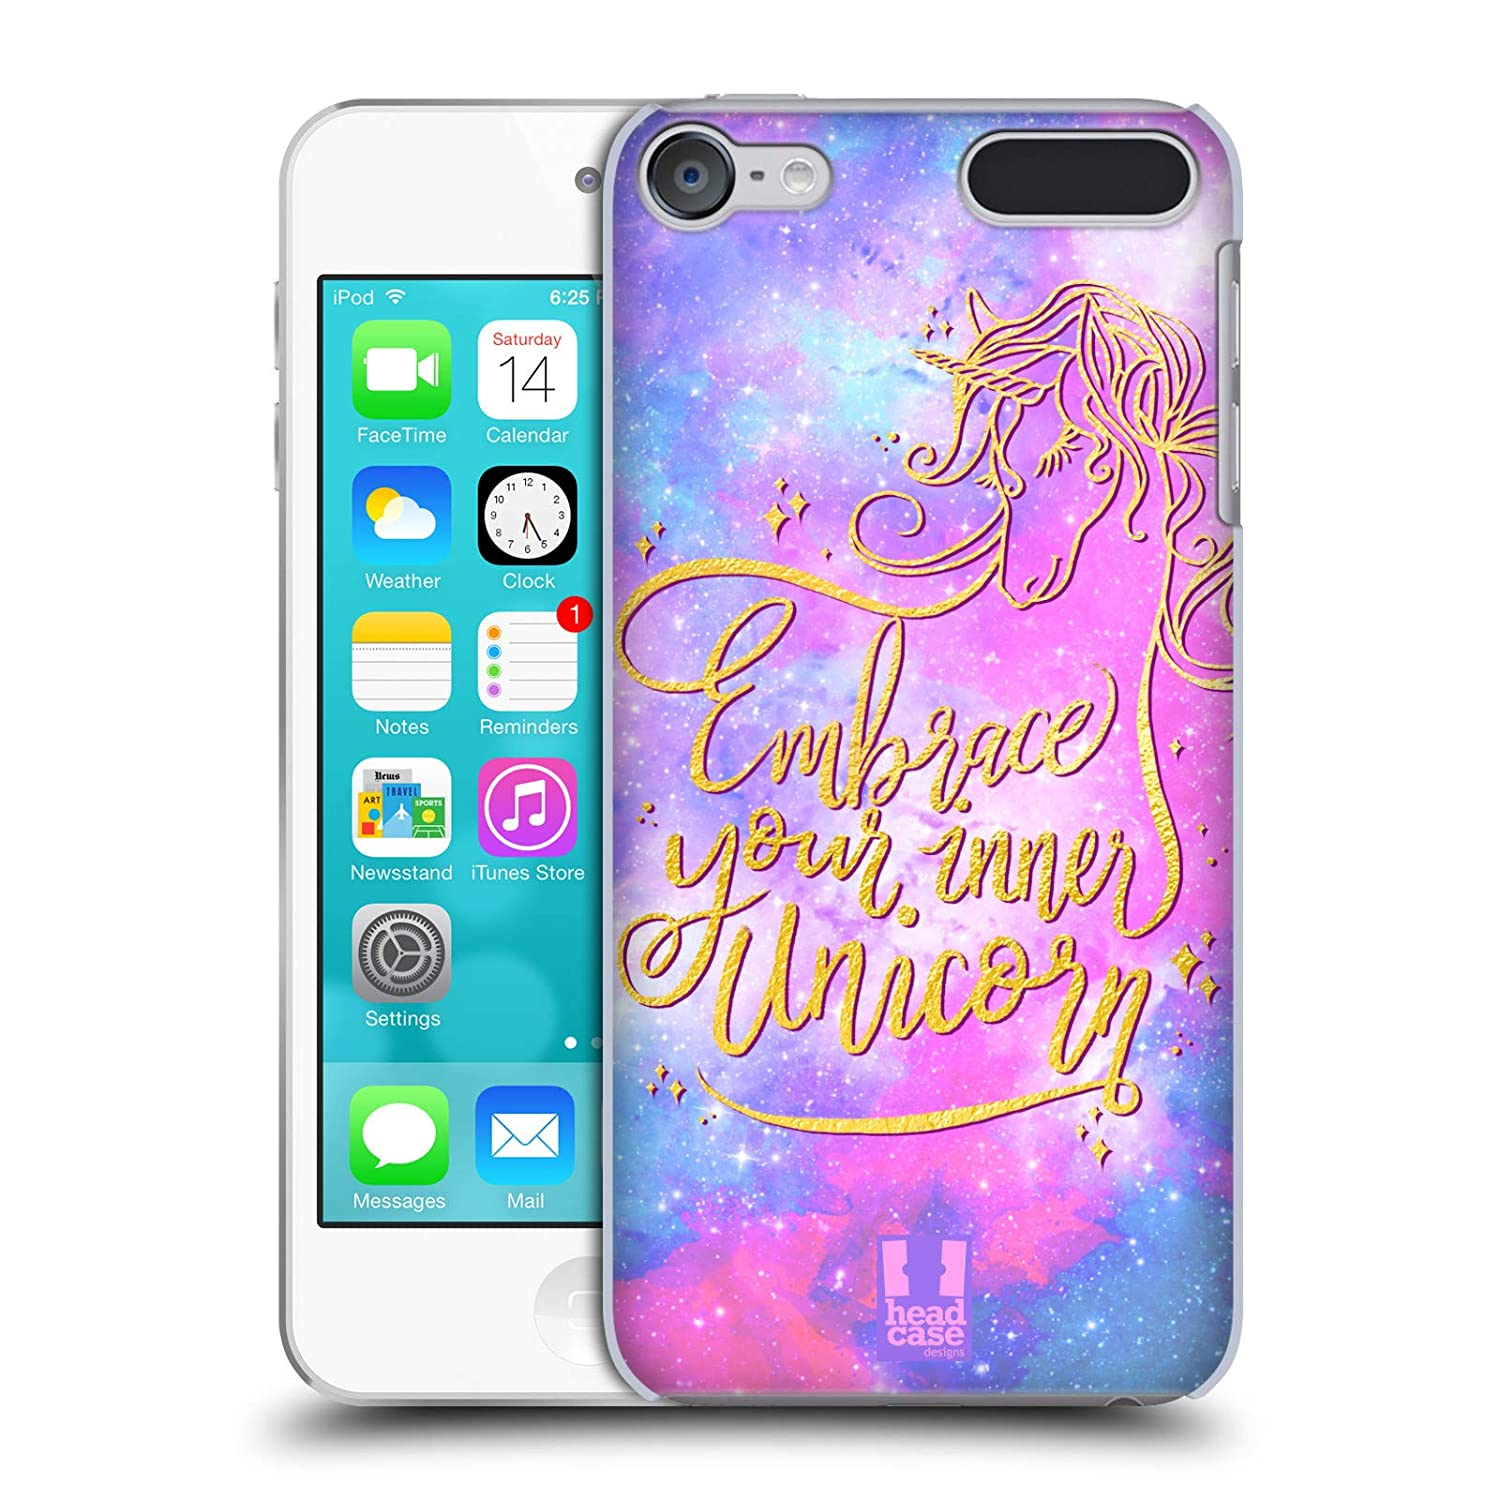 Head Case Designs Teal Unicorns and Galaxy Hard Back Case Compatible for Apple iPod Touch 4G 4th Gen